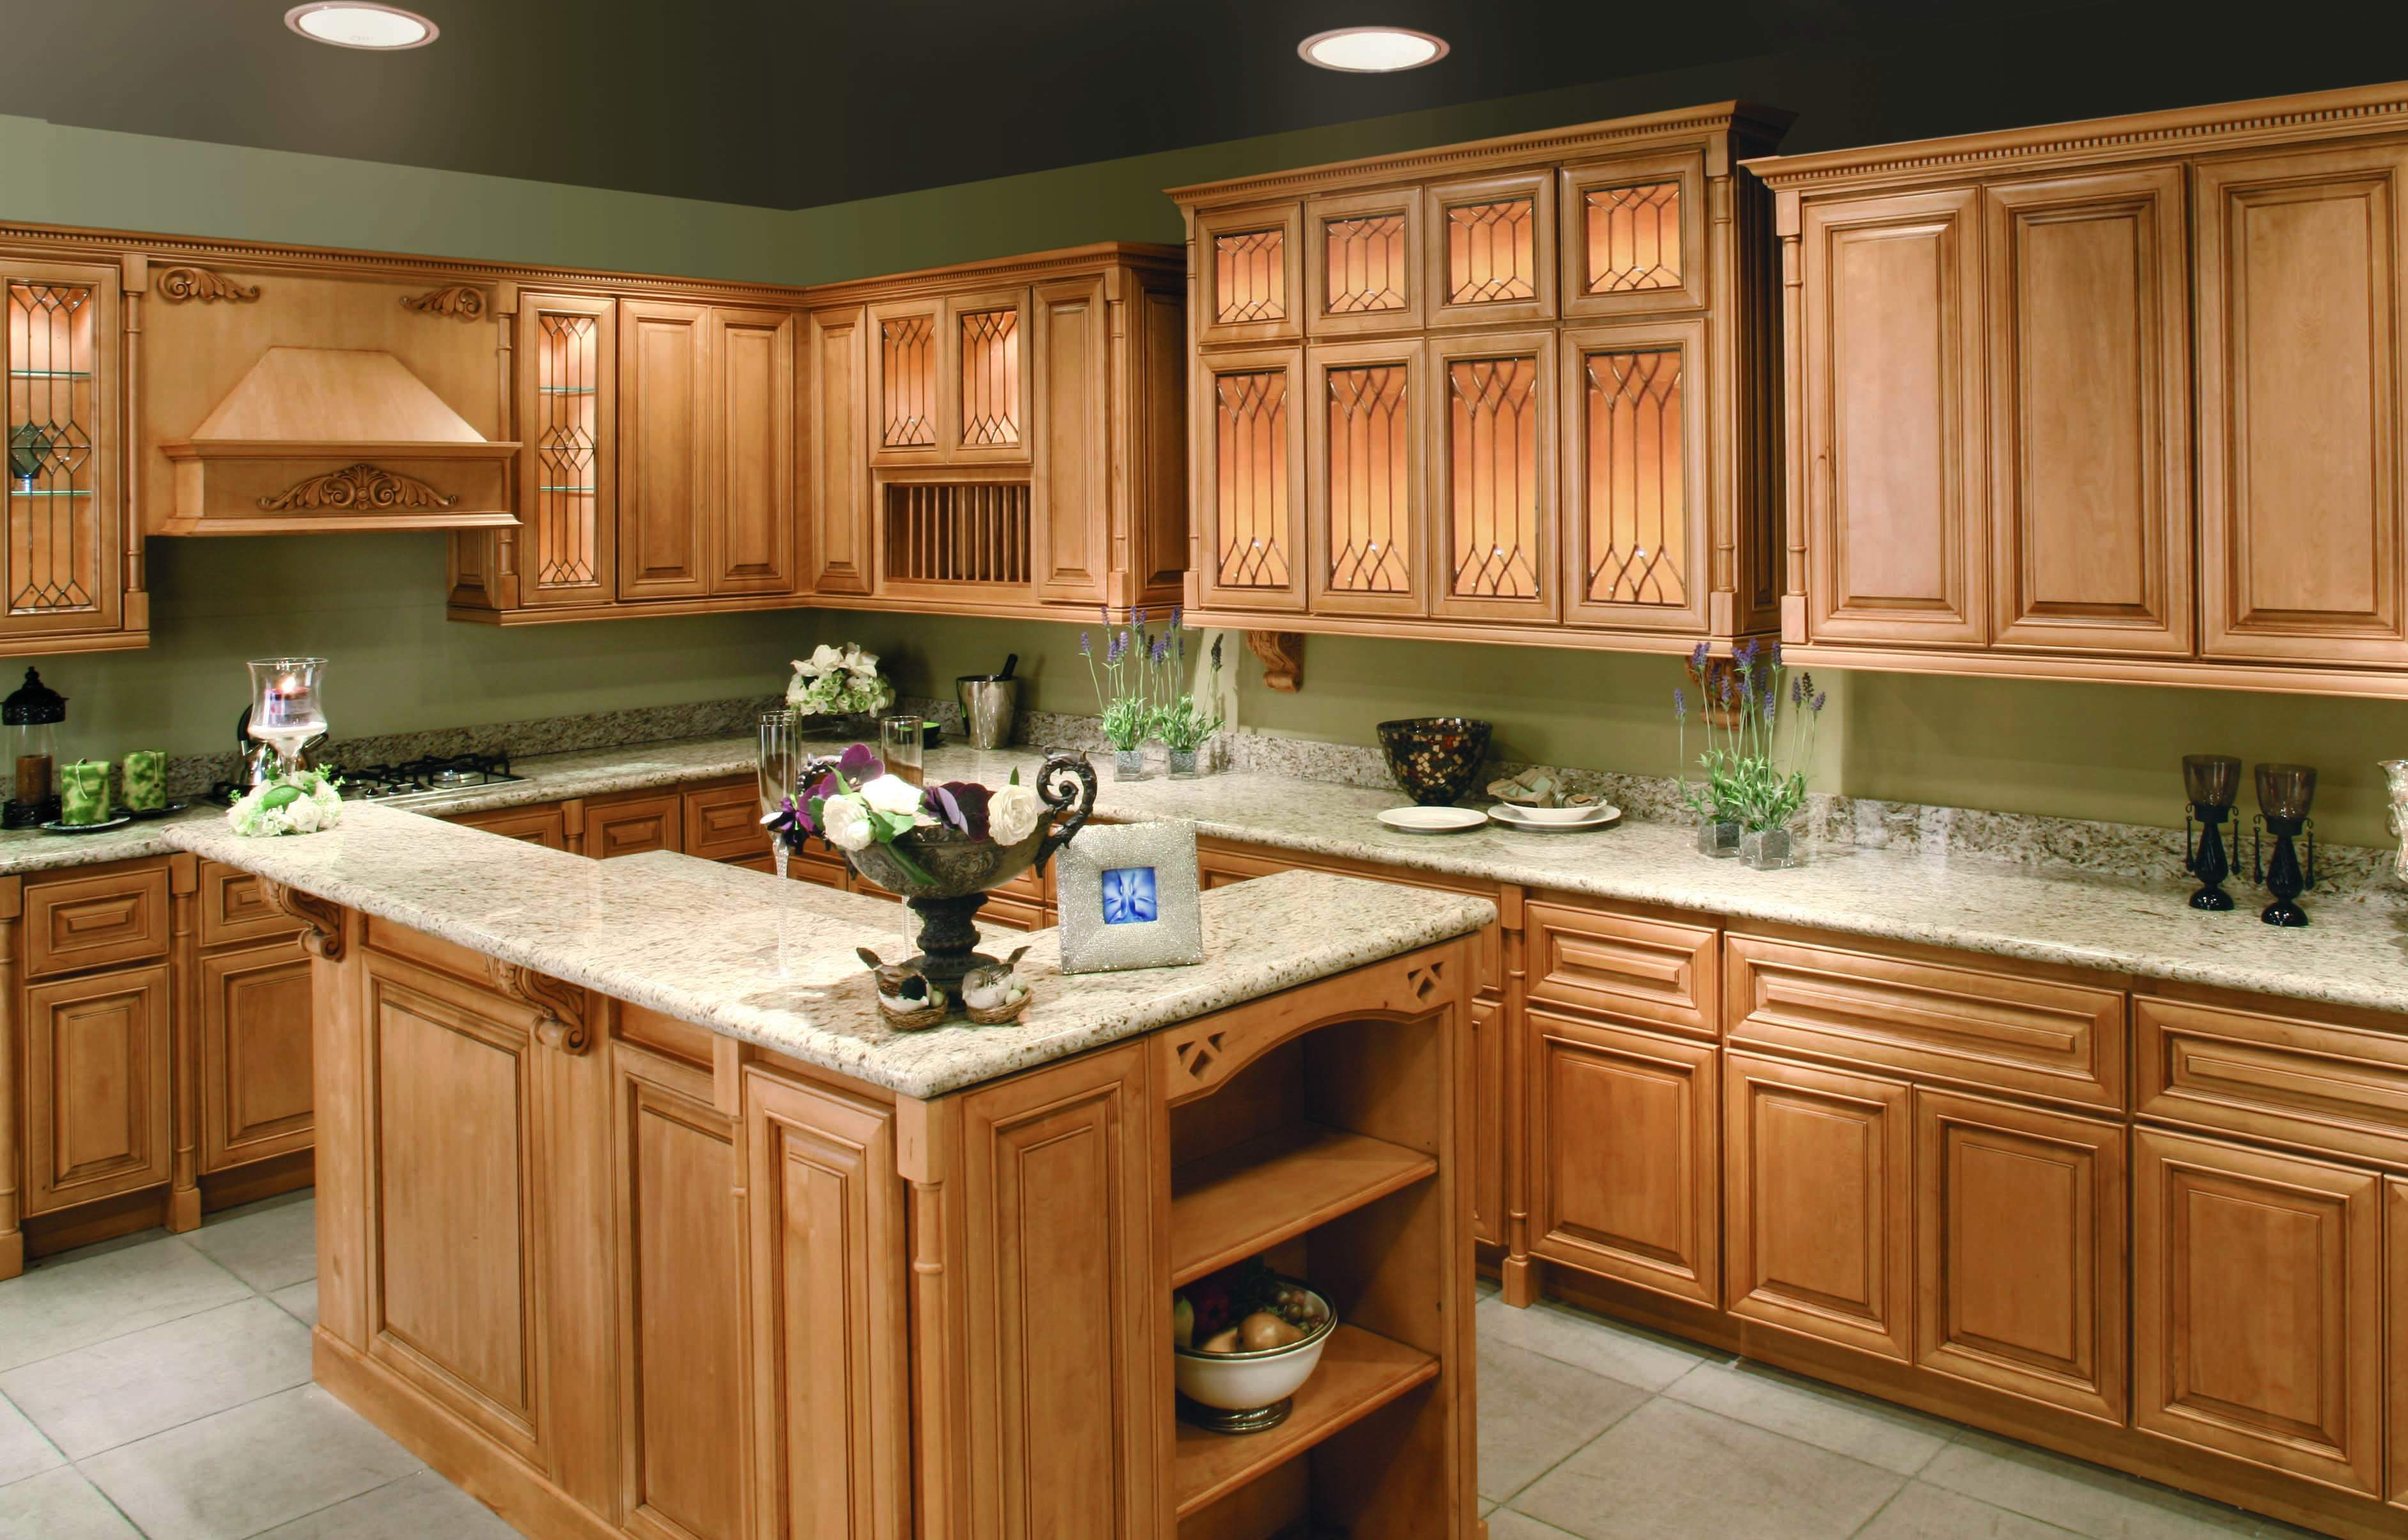 Color Schemes For Kitchen With Oak Cabinets